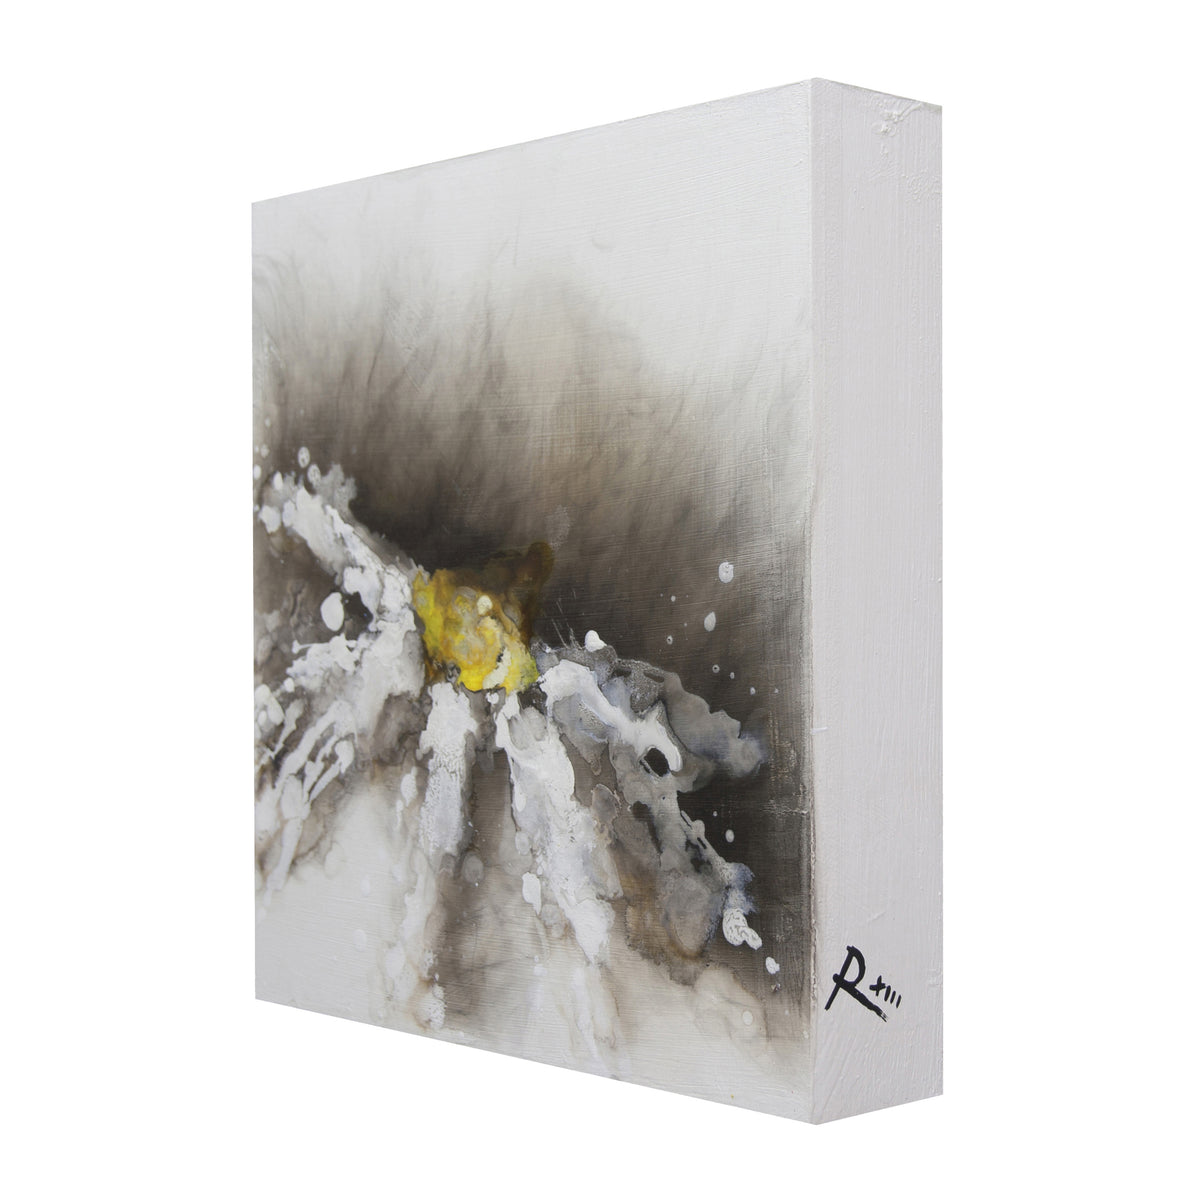 looking around, Royden Astrop, British artist, painter, fire painting, painting with fire, fire daisy, daisy painting, flower painting, dark daisy, oil painting